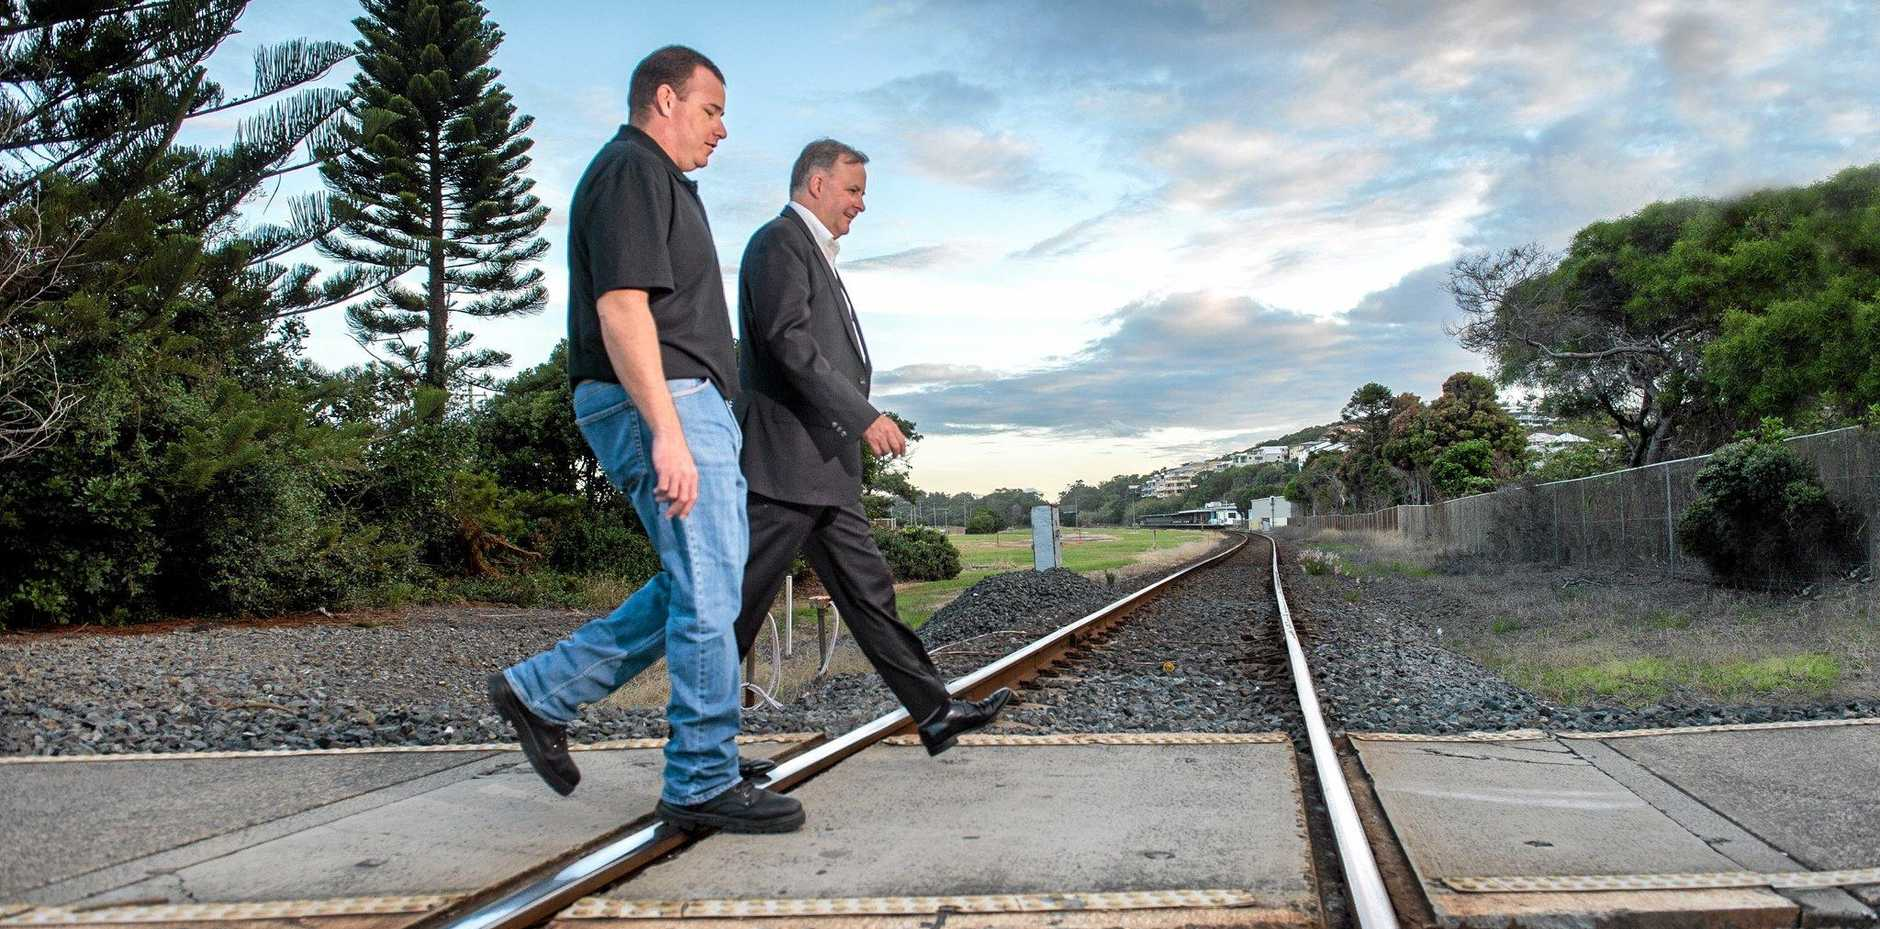 LABOR PLANS: Damian Wood and Anthony Albanese in Coffs Harbour this week.